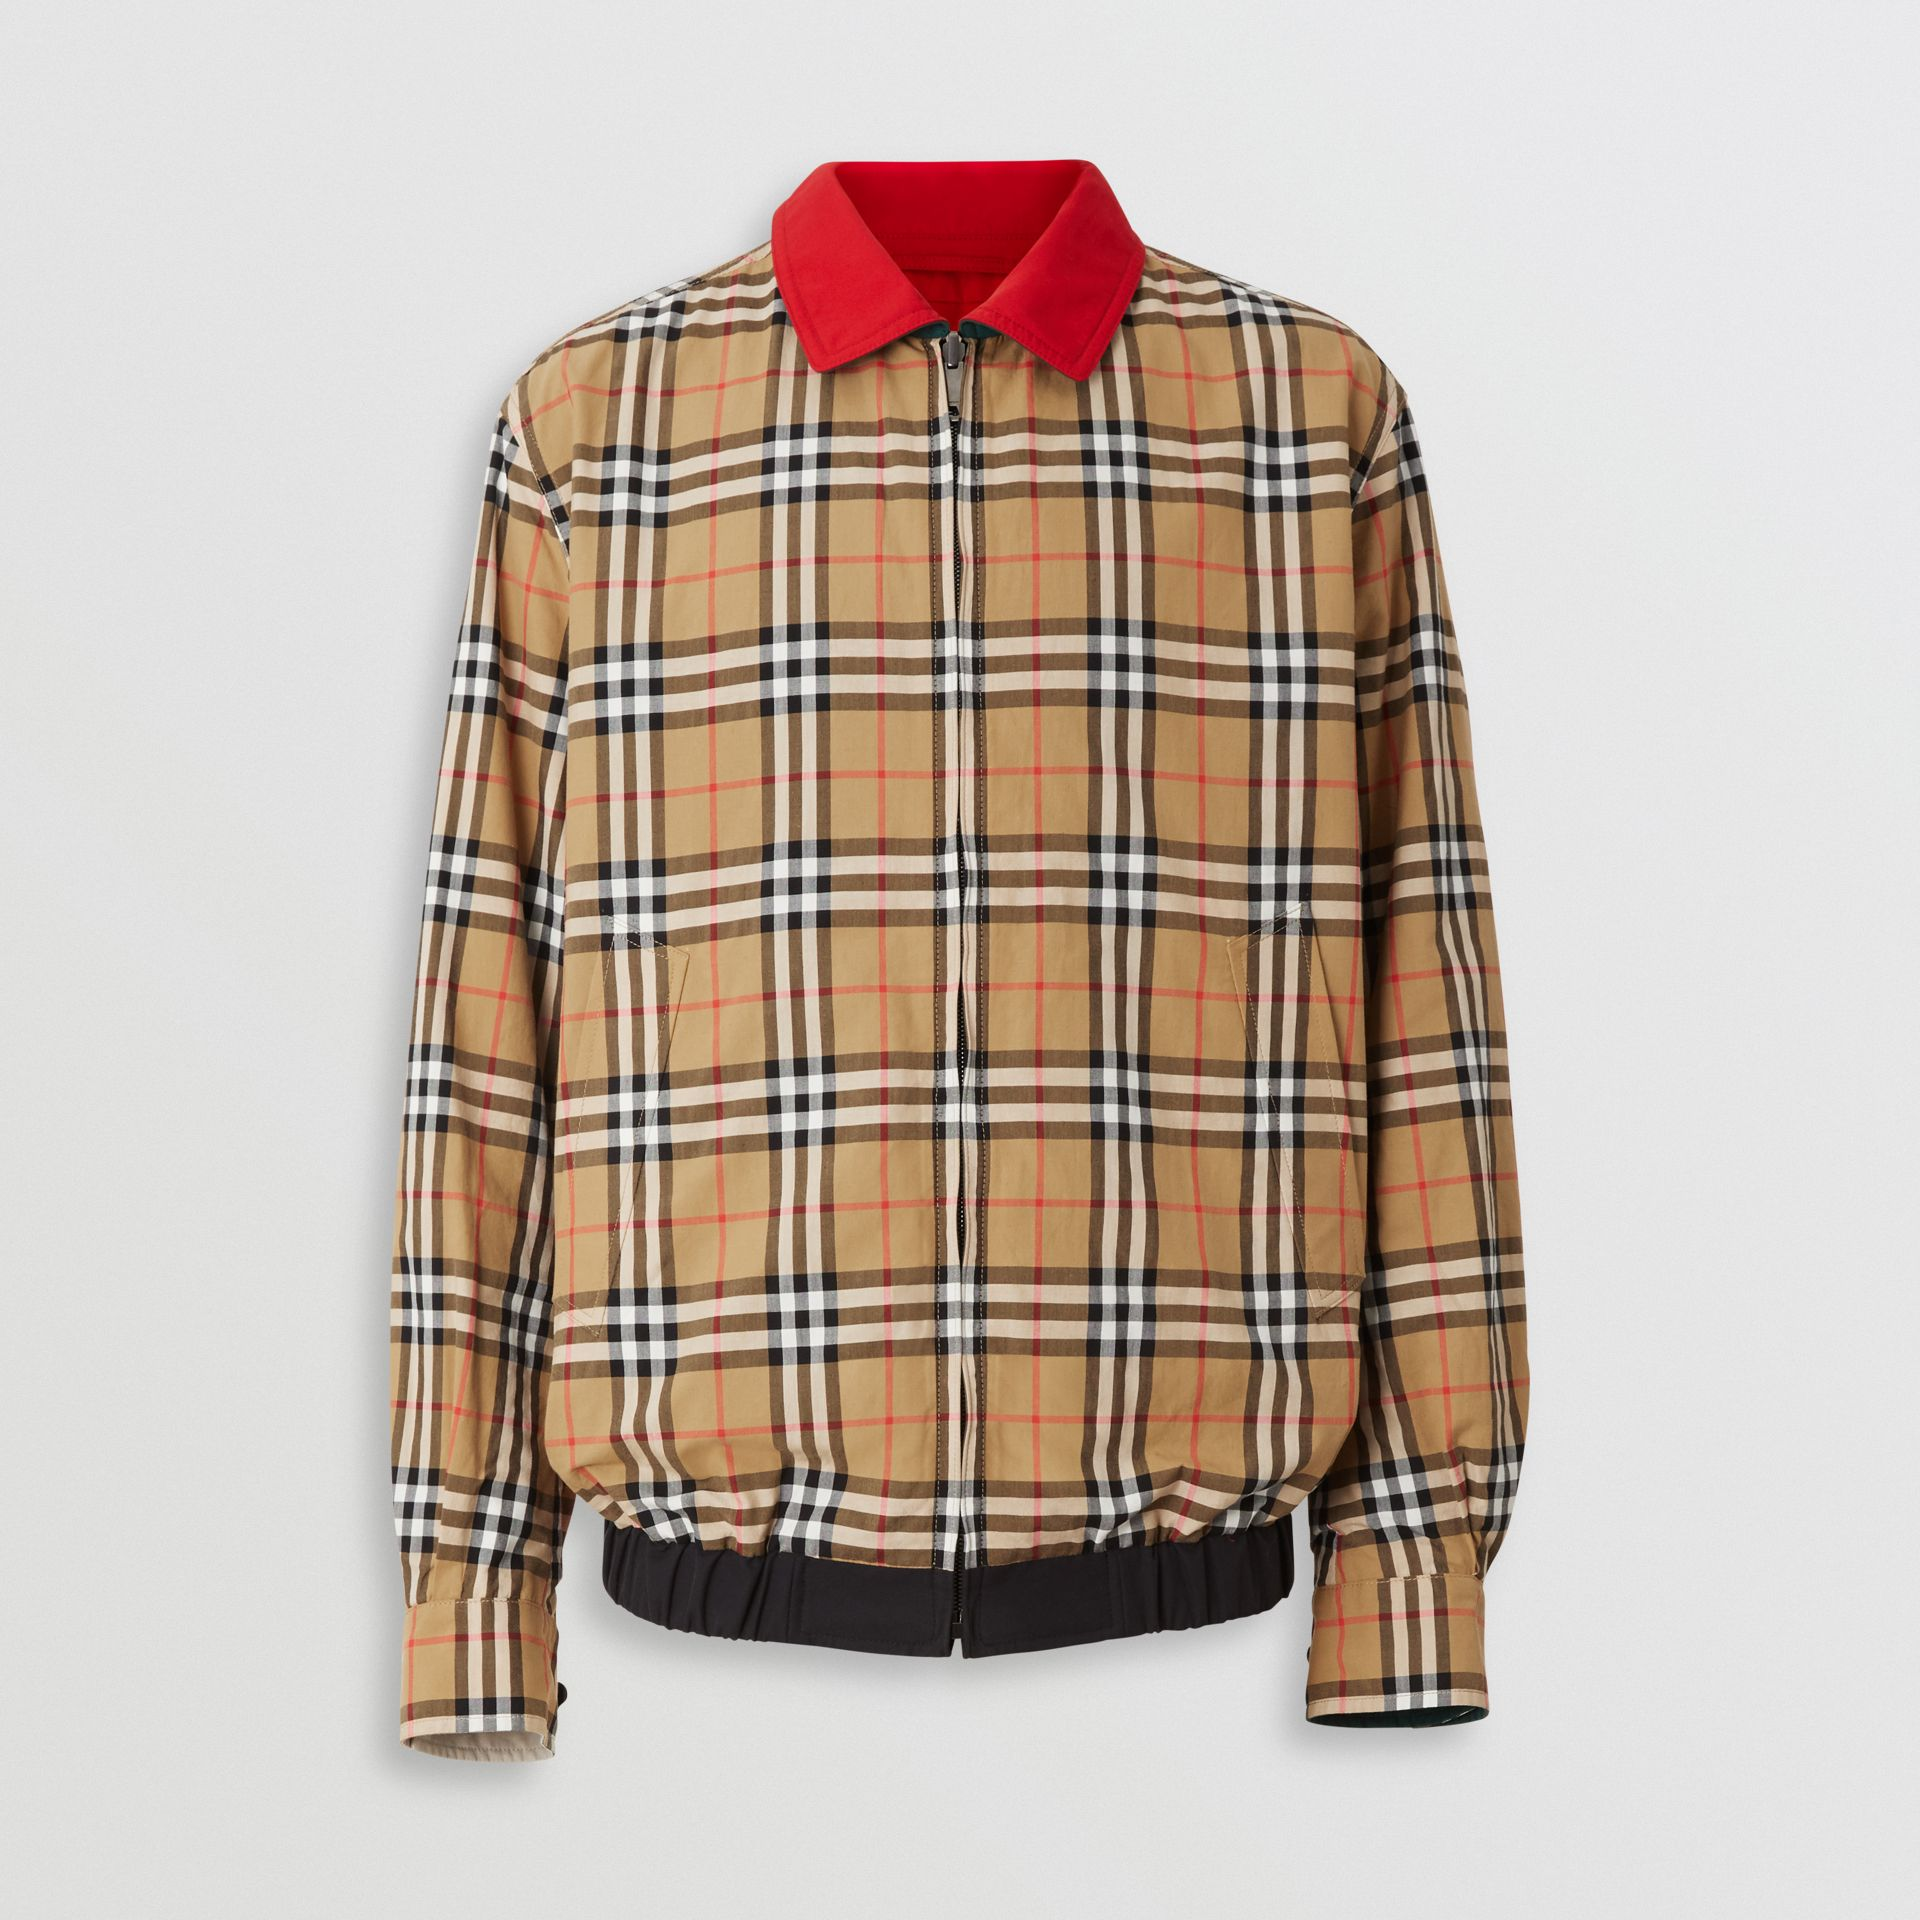 Veste Harrington réversible à motif Vintage check (Minuit) - Homme | Burberry - photo de la galerie 6